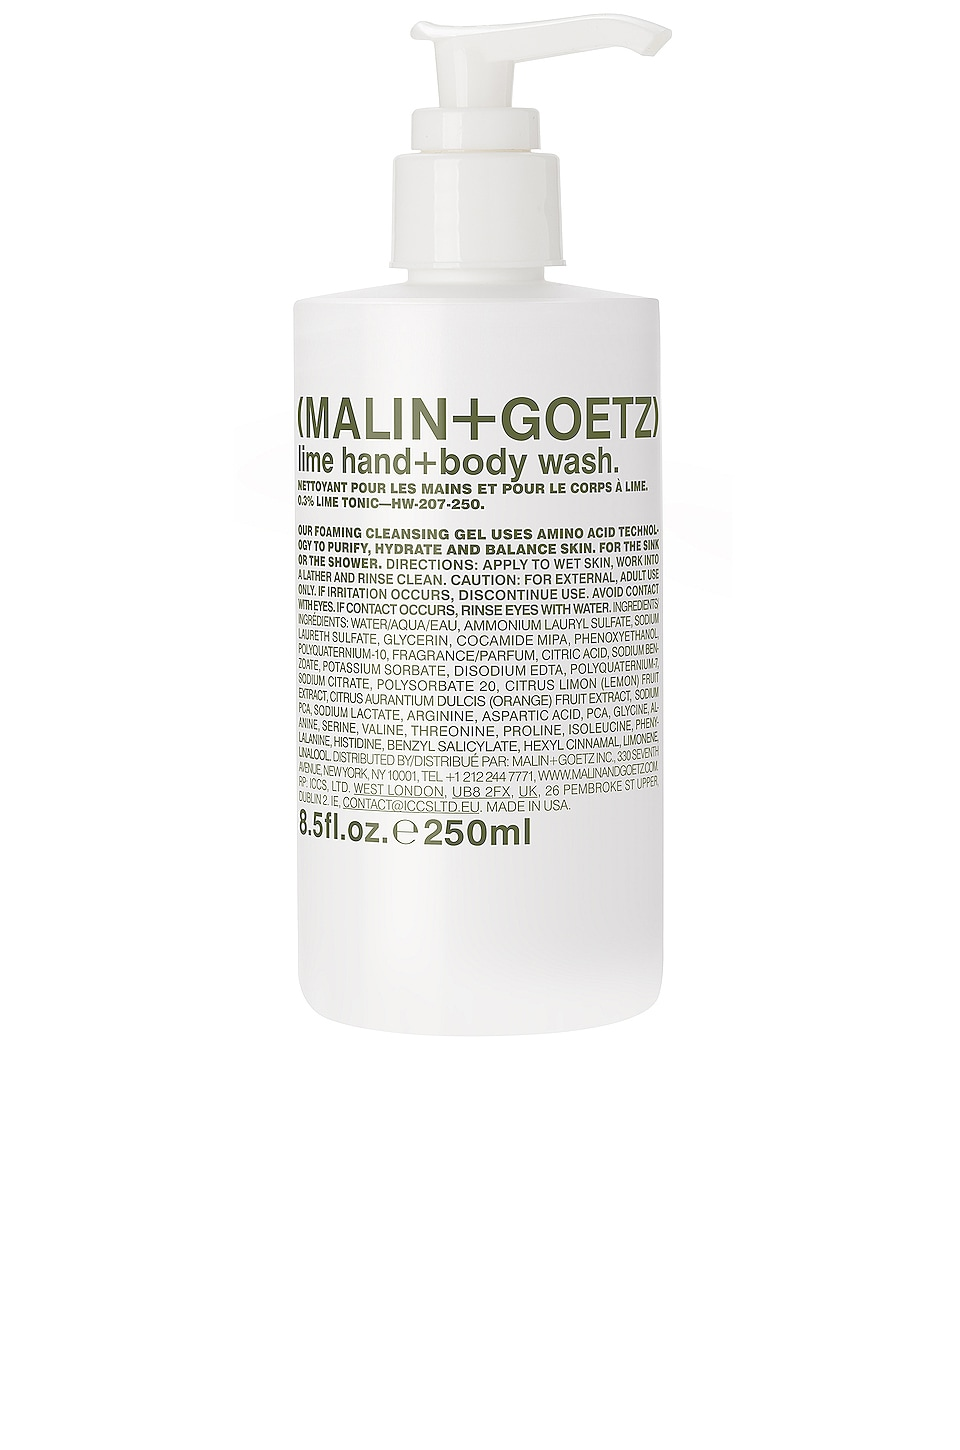 MALIN+GOETZ Lime Hand + Body Wash